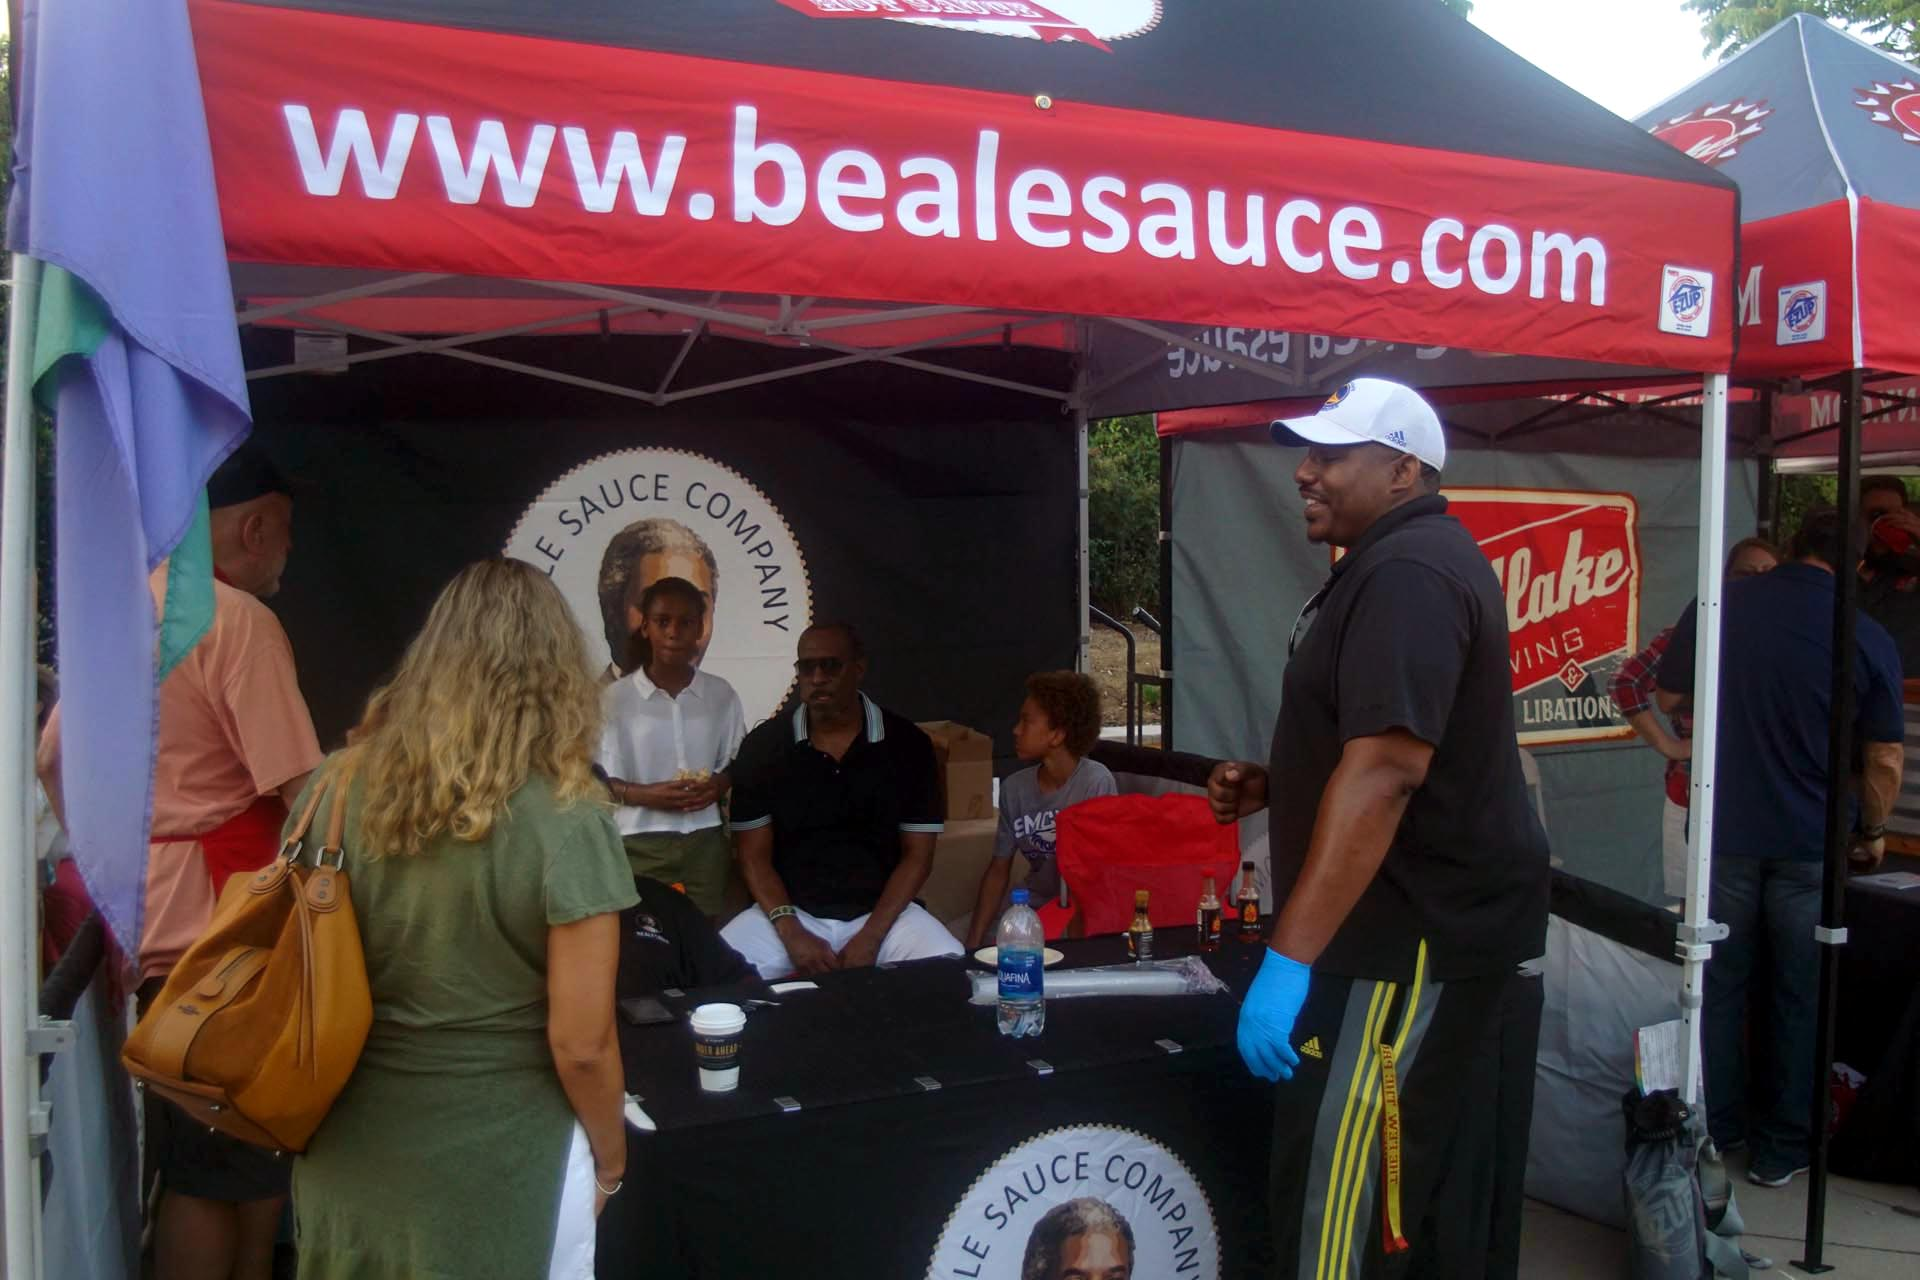 Beale's Hot Sauce